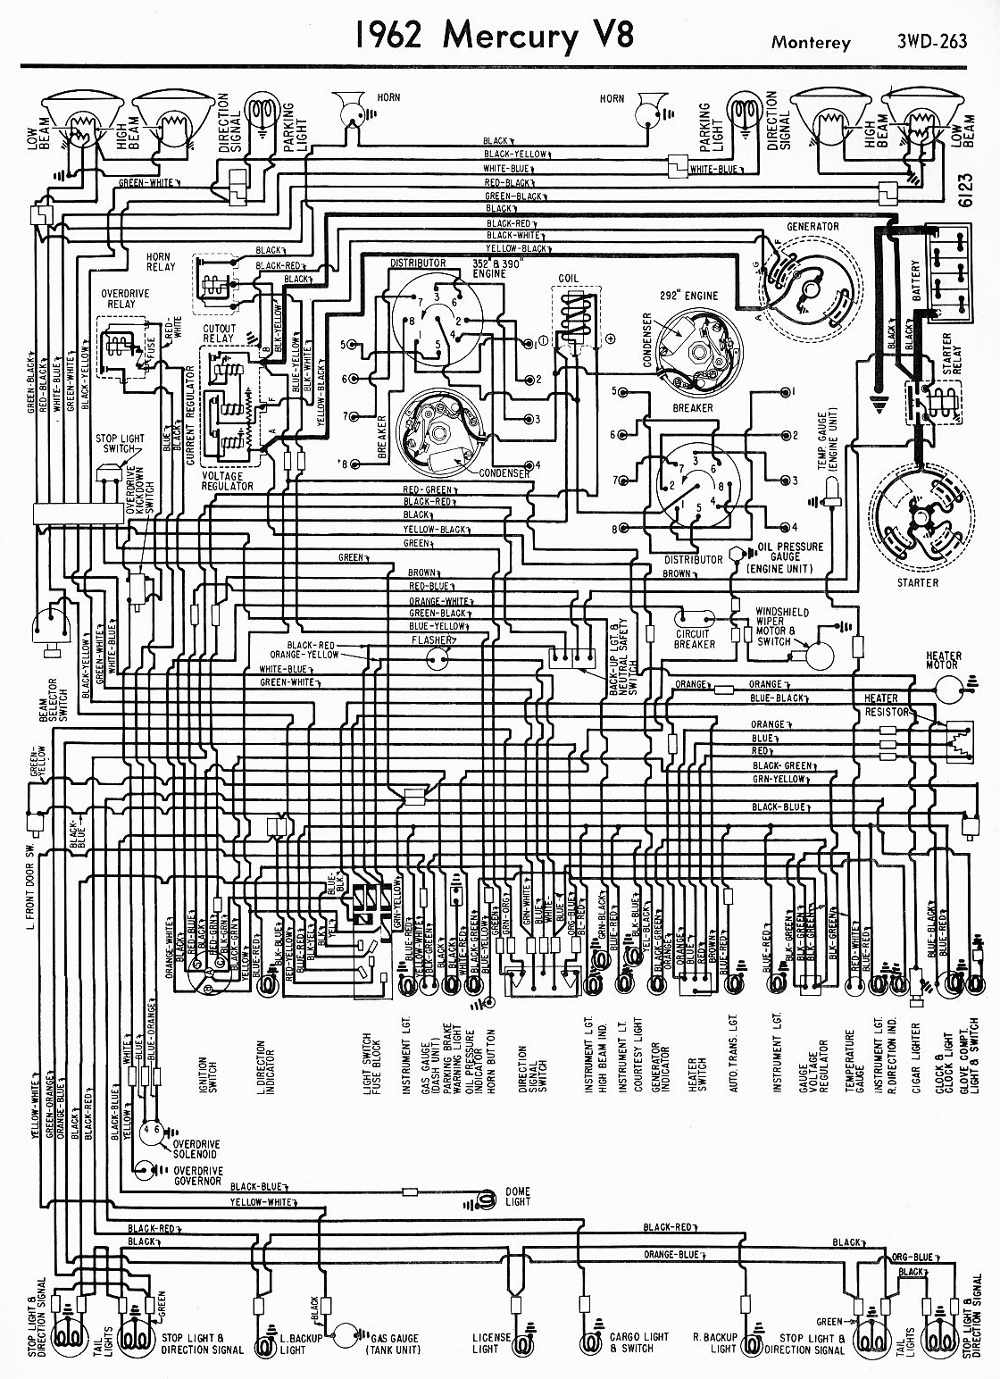 Wiring Diagrams Of 1962 Mercury V8 Monterey Wire Data Schema 1999 Jeep Grand Cherokee Stereo Diagram Trusted Car Manuals Pdf Fault Codes Rh Automotive Net 50 Hp Outboard